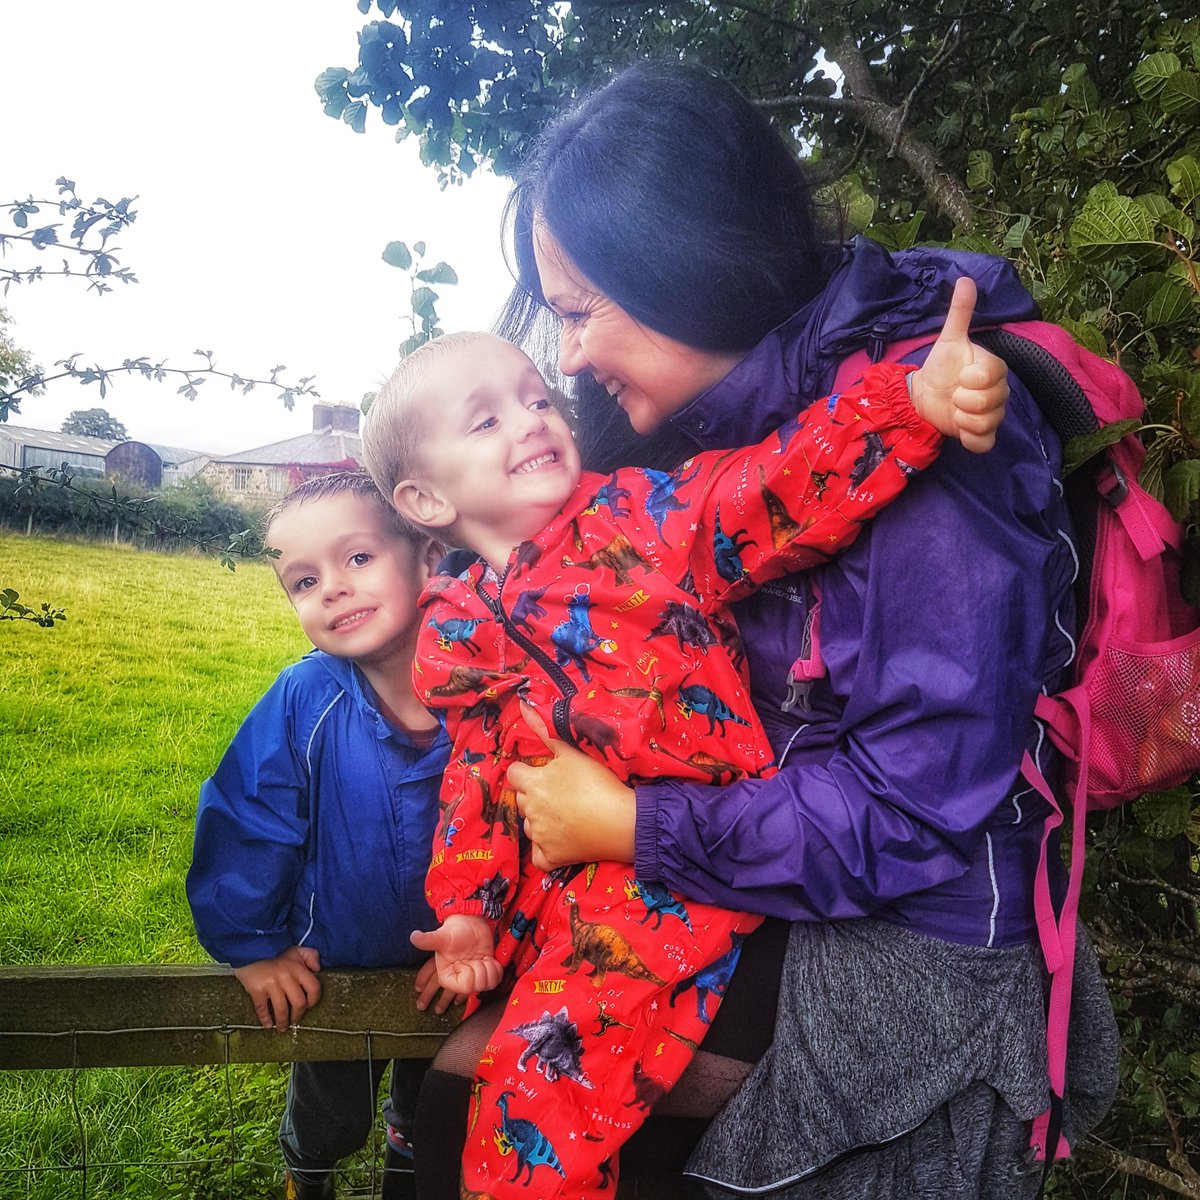 The thoroughly modern mummy: why there is no such thing as work/life balance http://dld.bz/hQ8HM #worklifebalance #worklifeblend #modernmummypic.twitter.com/2E3dXgkEF1